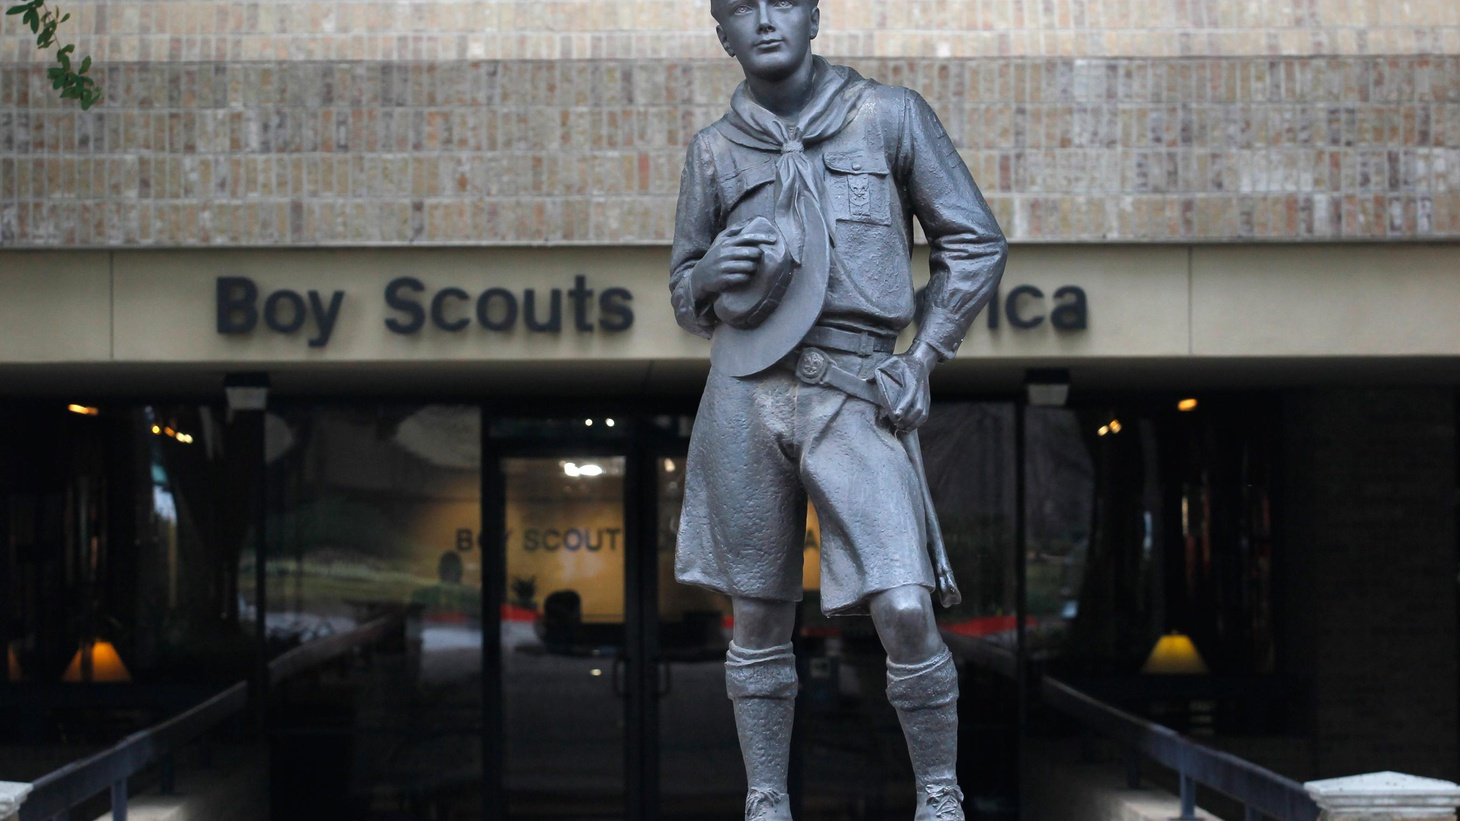 The Boy Scouts will now allow openly gay members, but only until the age of 18, exposing conflicts between religious groups, corporate America and Scouting's itself.